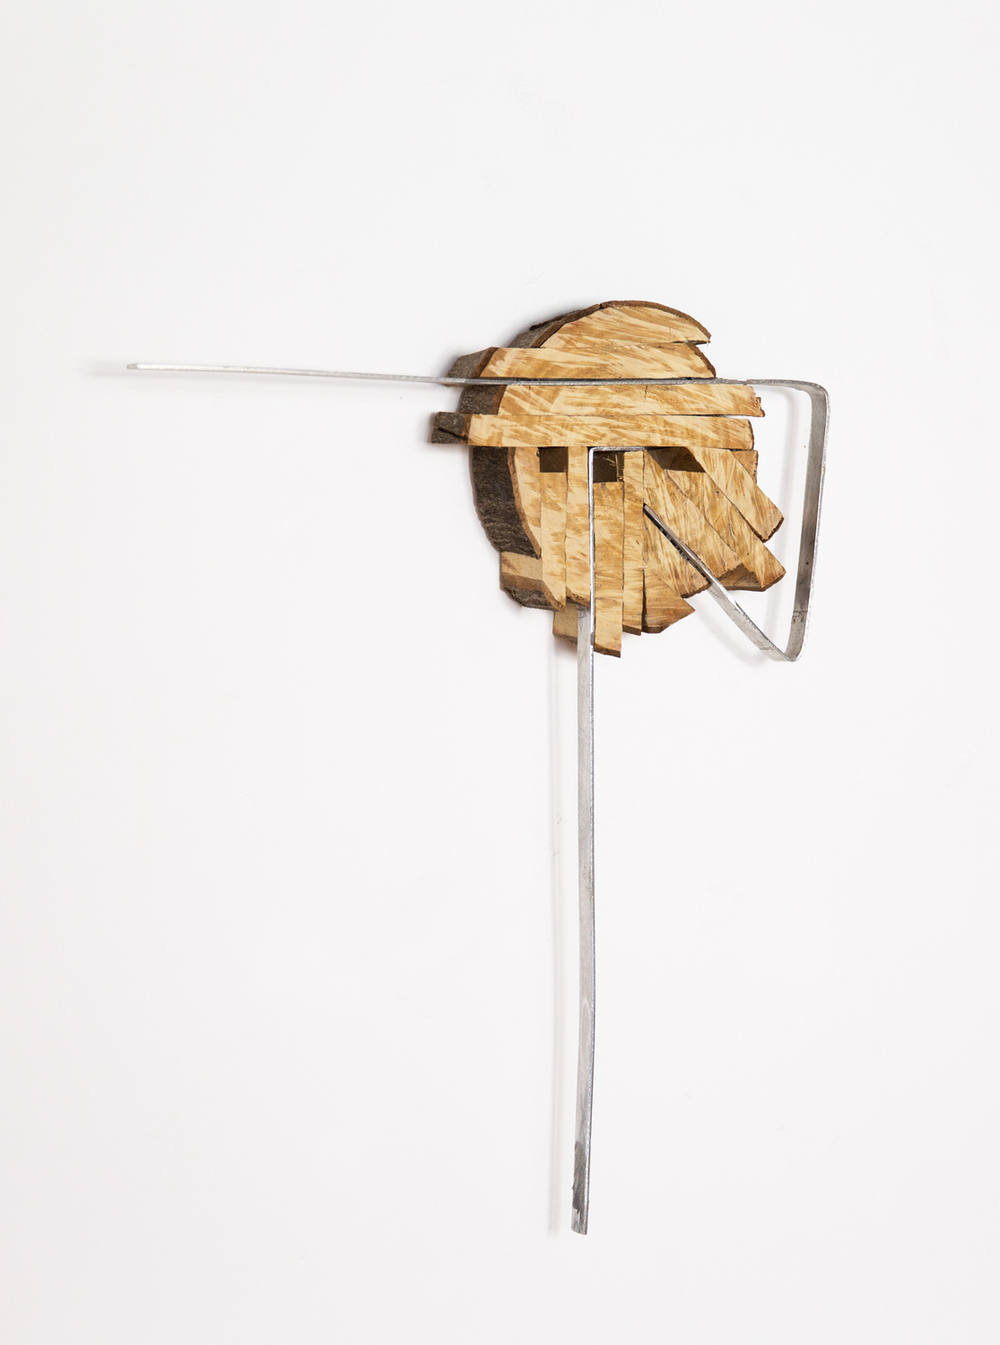 Kishio Suga  Divergent Accumulation, Broadened Orientation  1999 Wood and metal 17 ⅜h x 13 ¾w x 1 ¾d in KS018